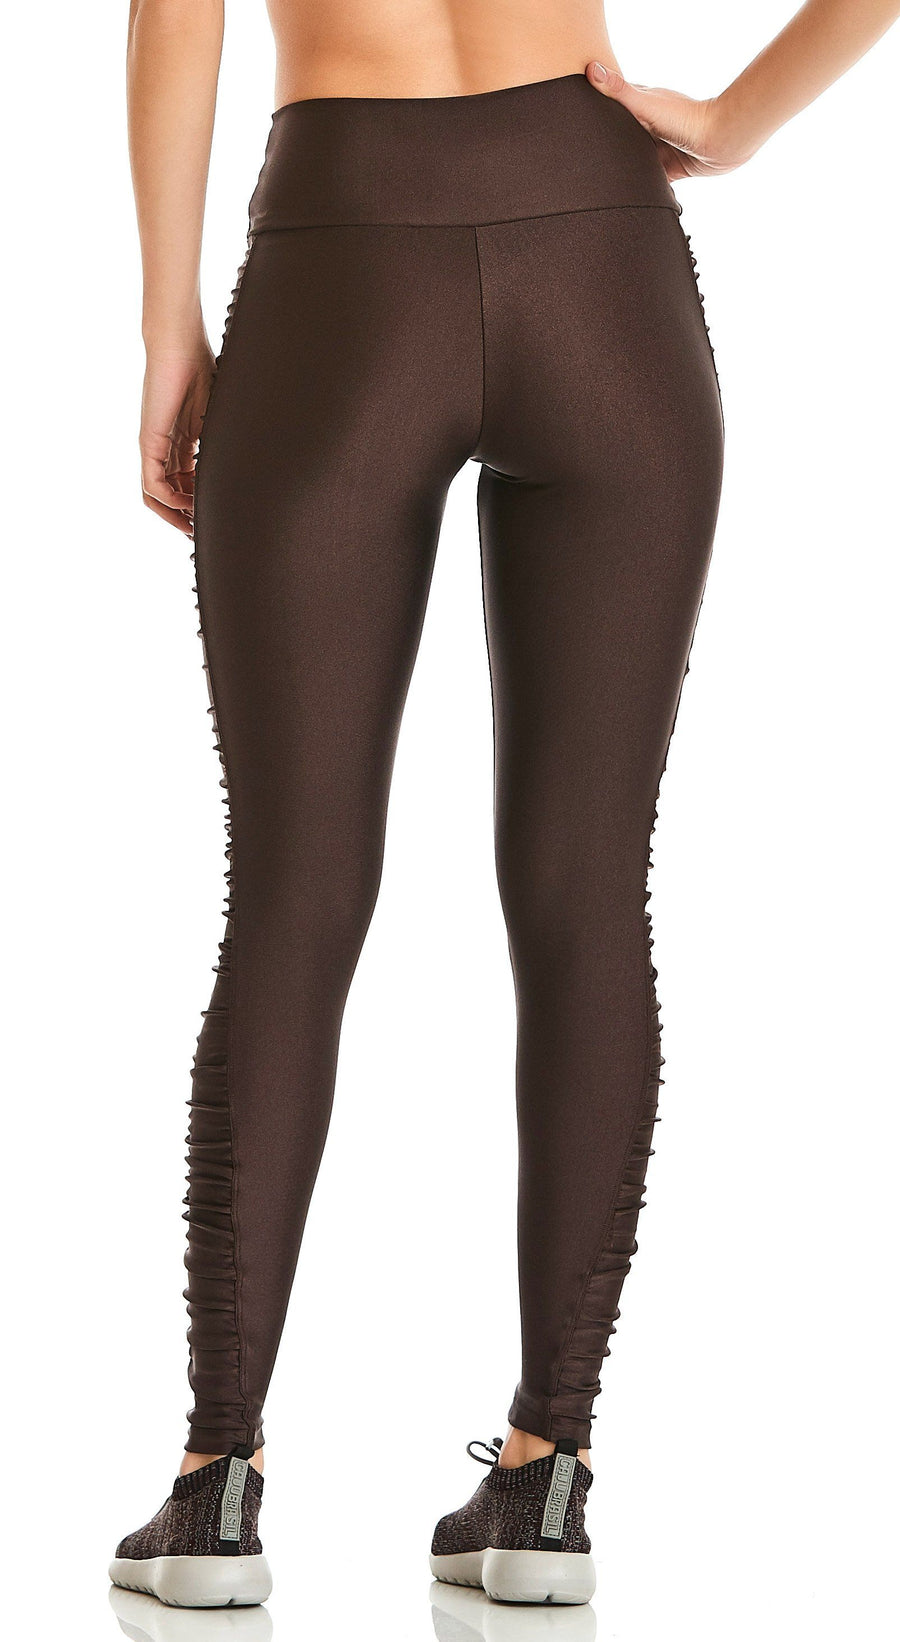 Brazilian Ruched Legging - Ruched Inspire Brown